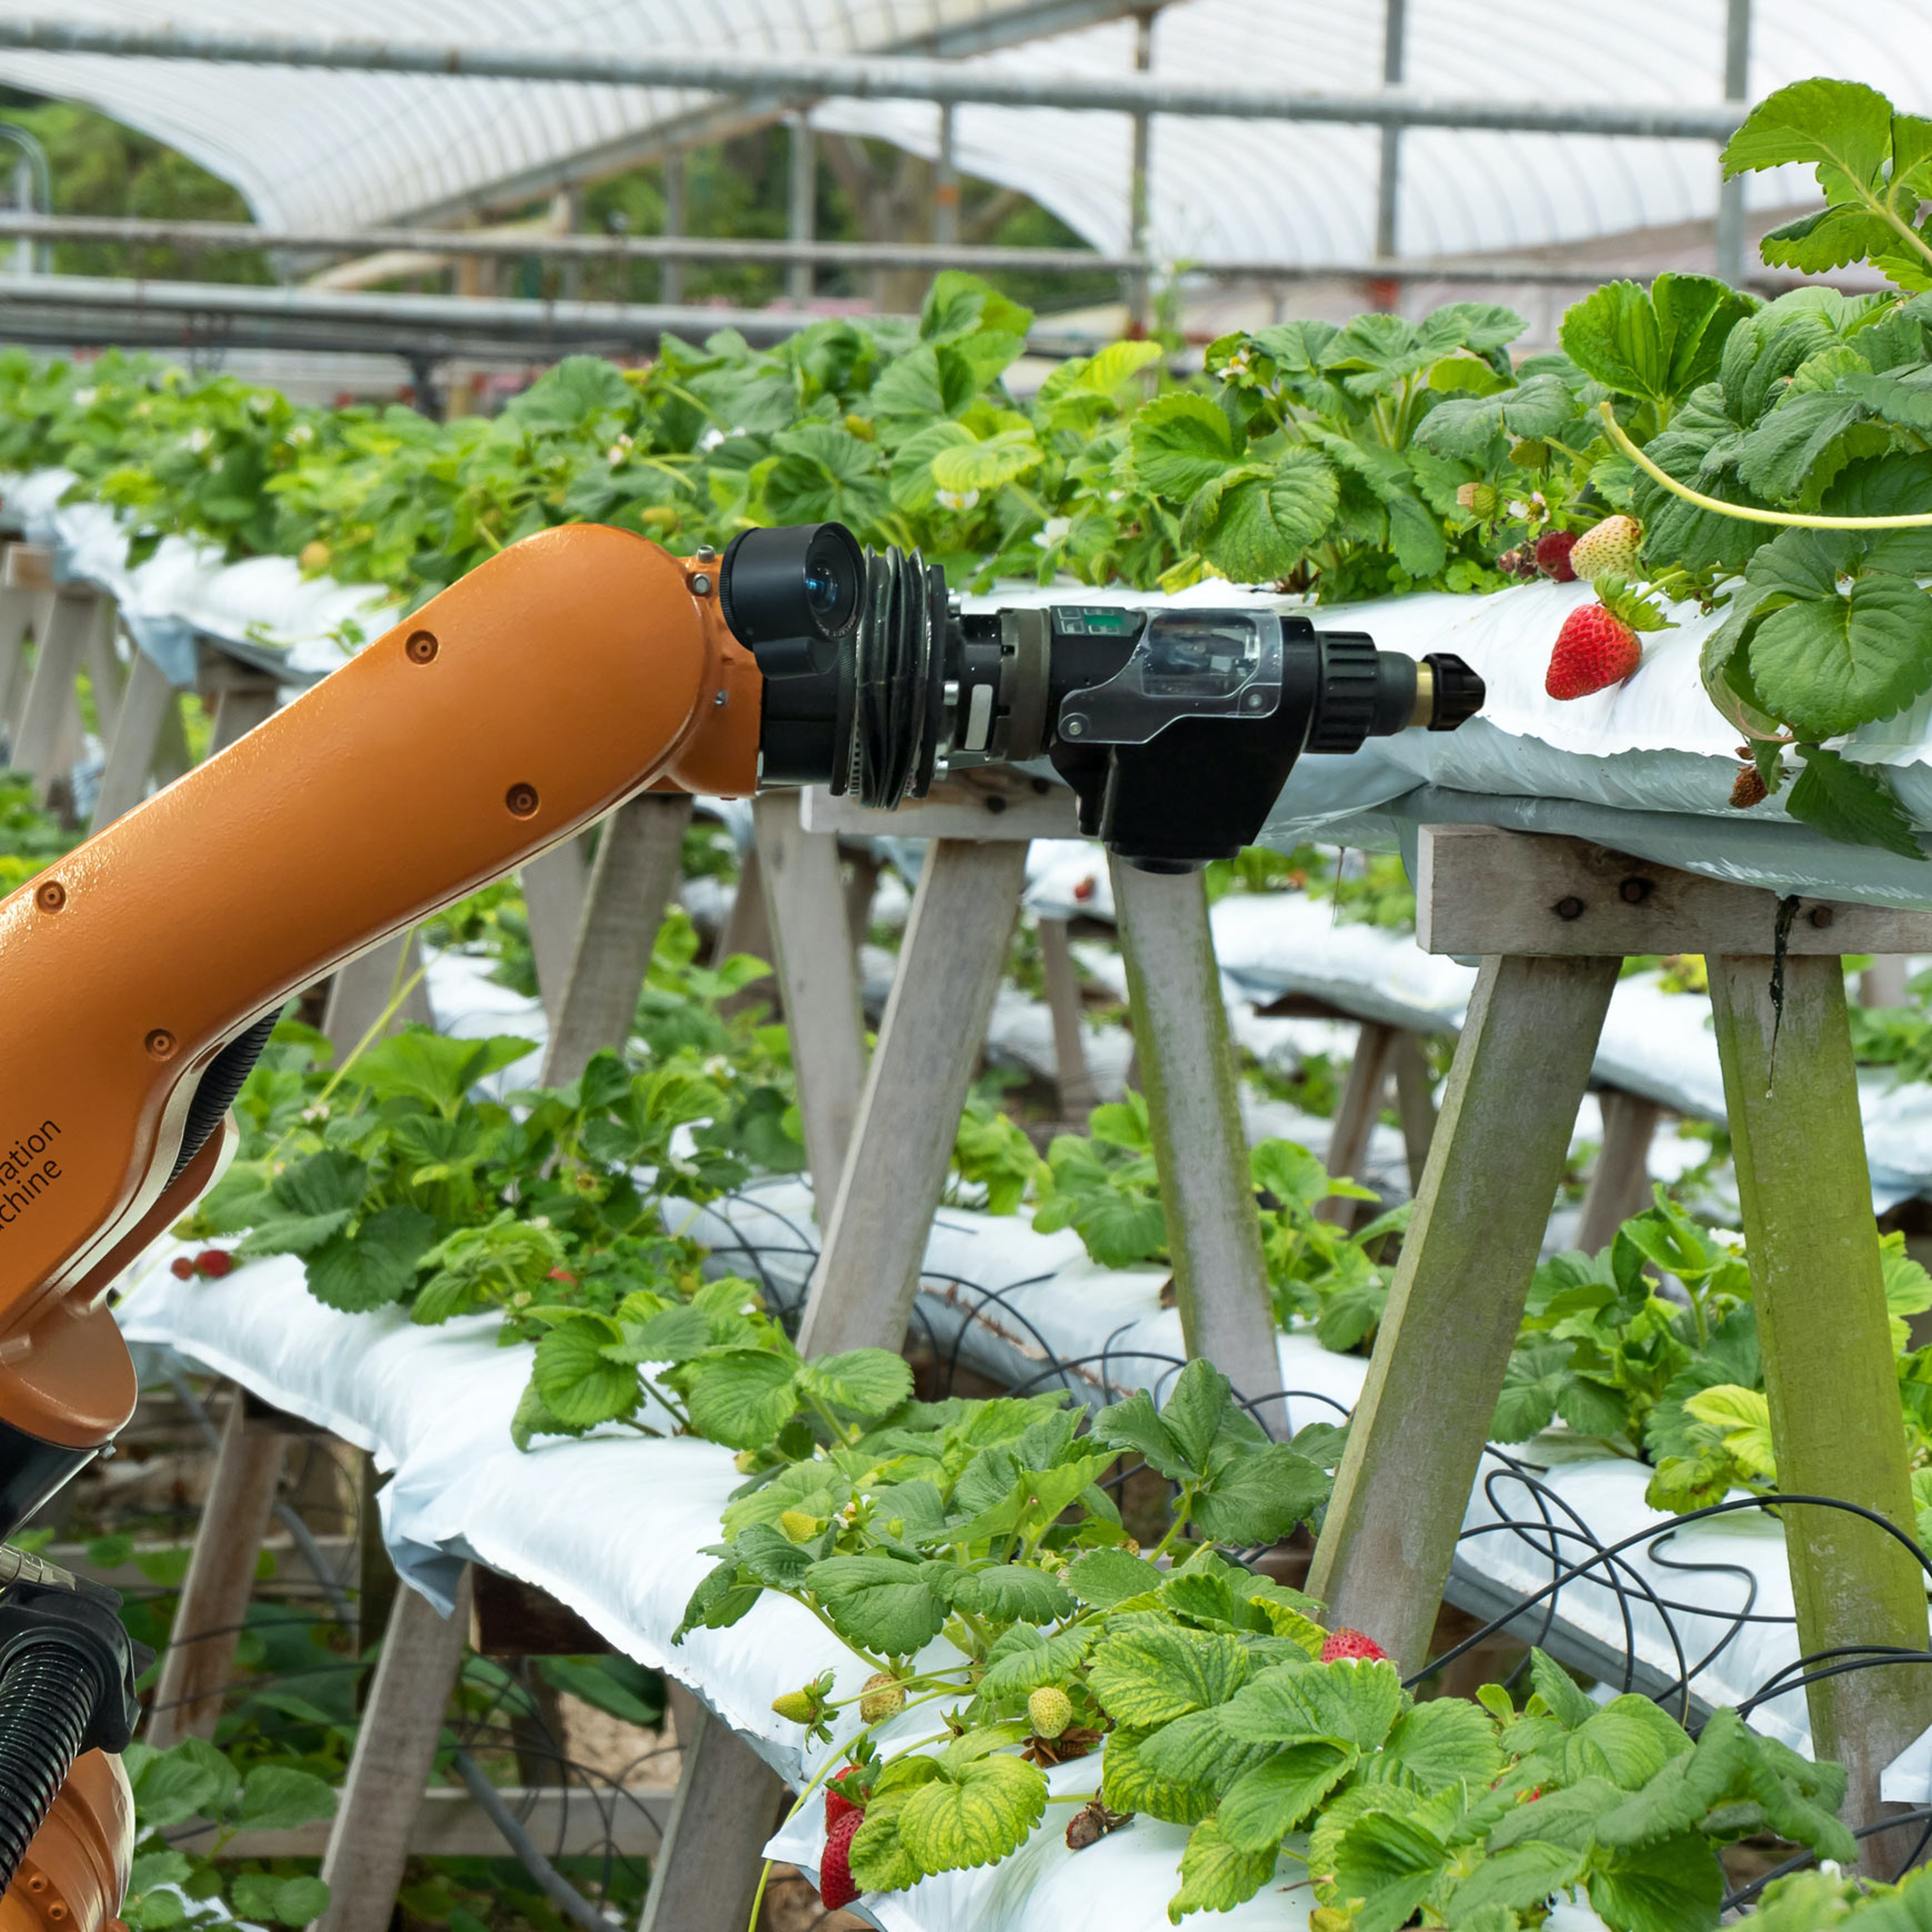 farming technology picks a strawberry in a greenhouse